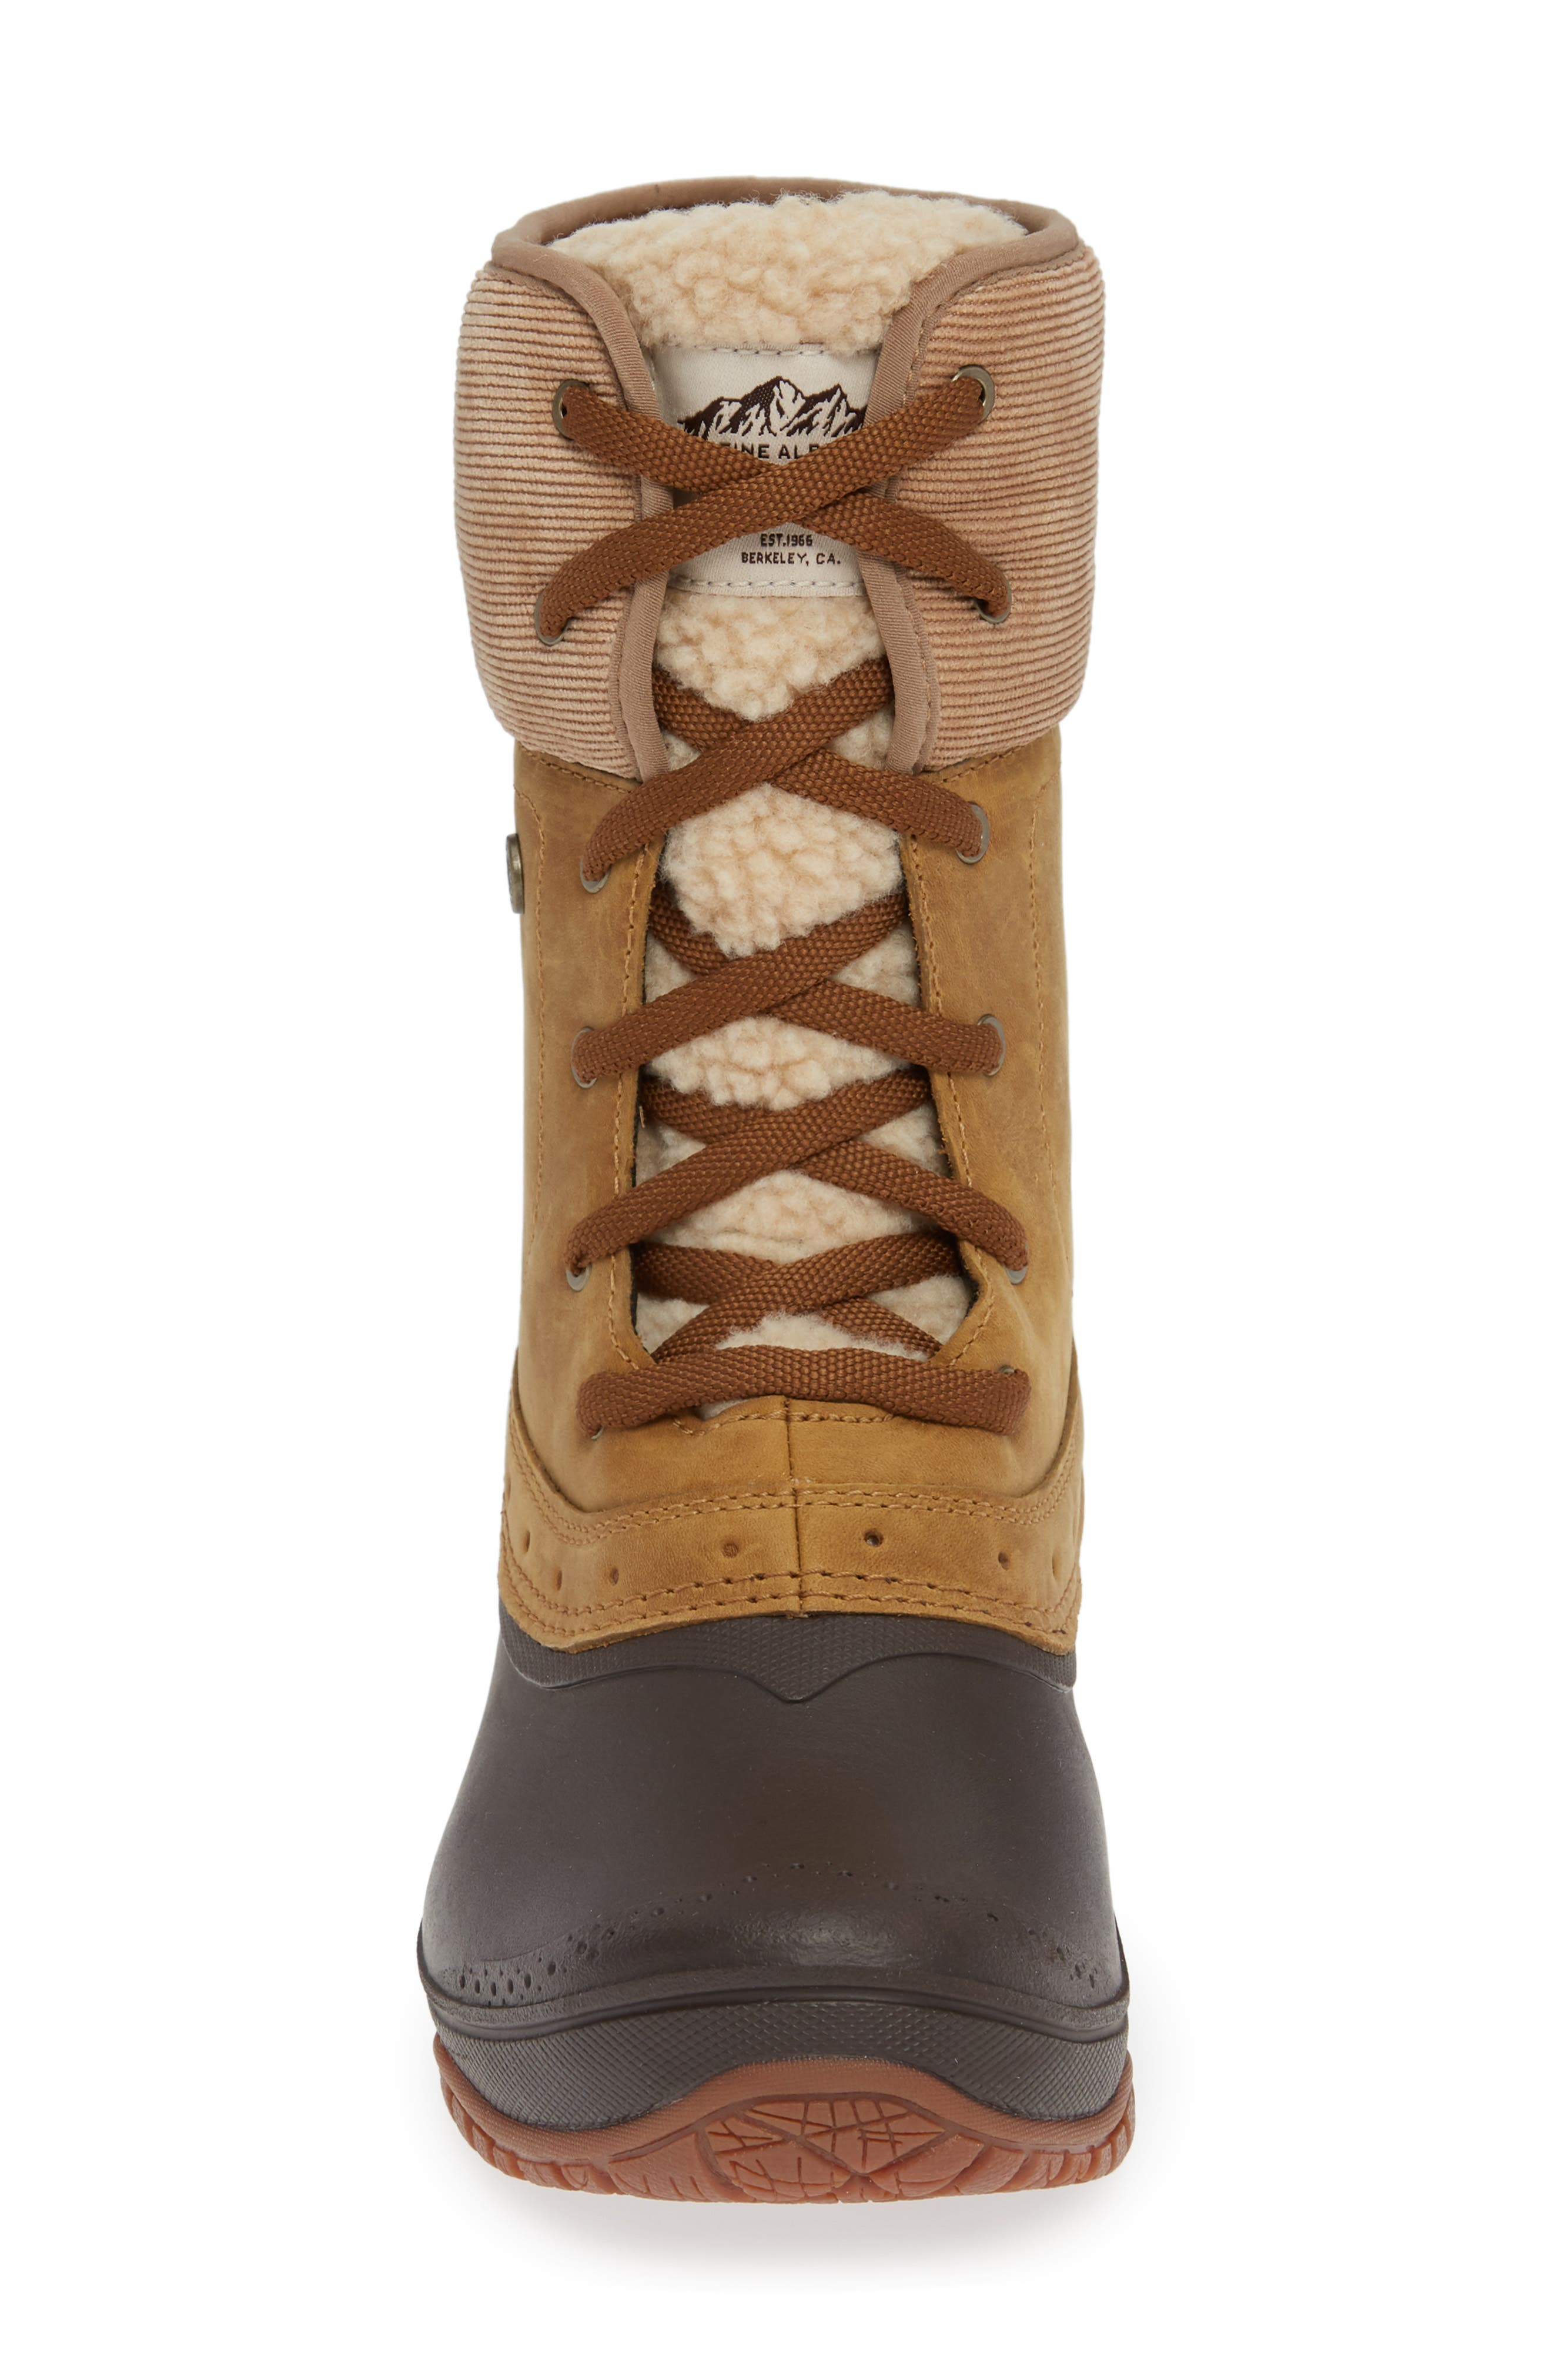 Shellista Roll Cuff Waterproof Insulated Winter Boot,                             Alternate thumbnail 4, color,                             GOLDEN BROWN/ COFFEE BROWN